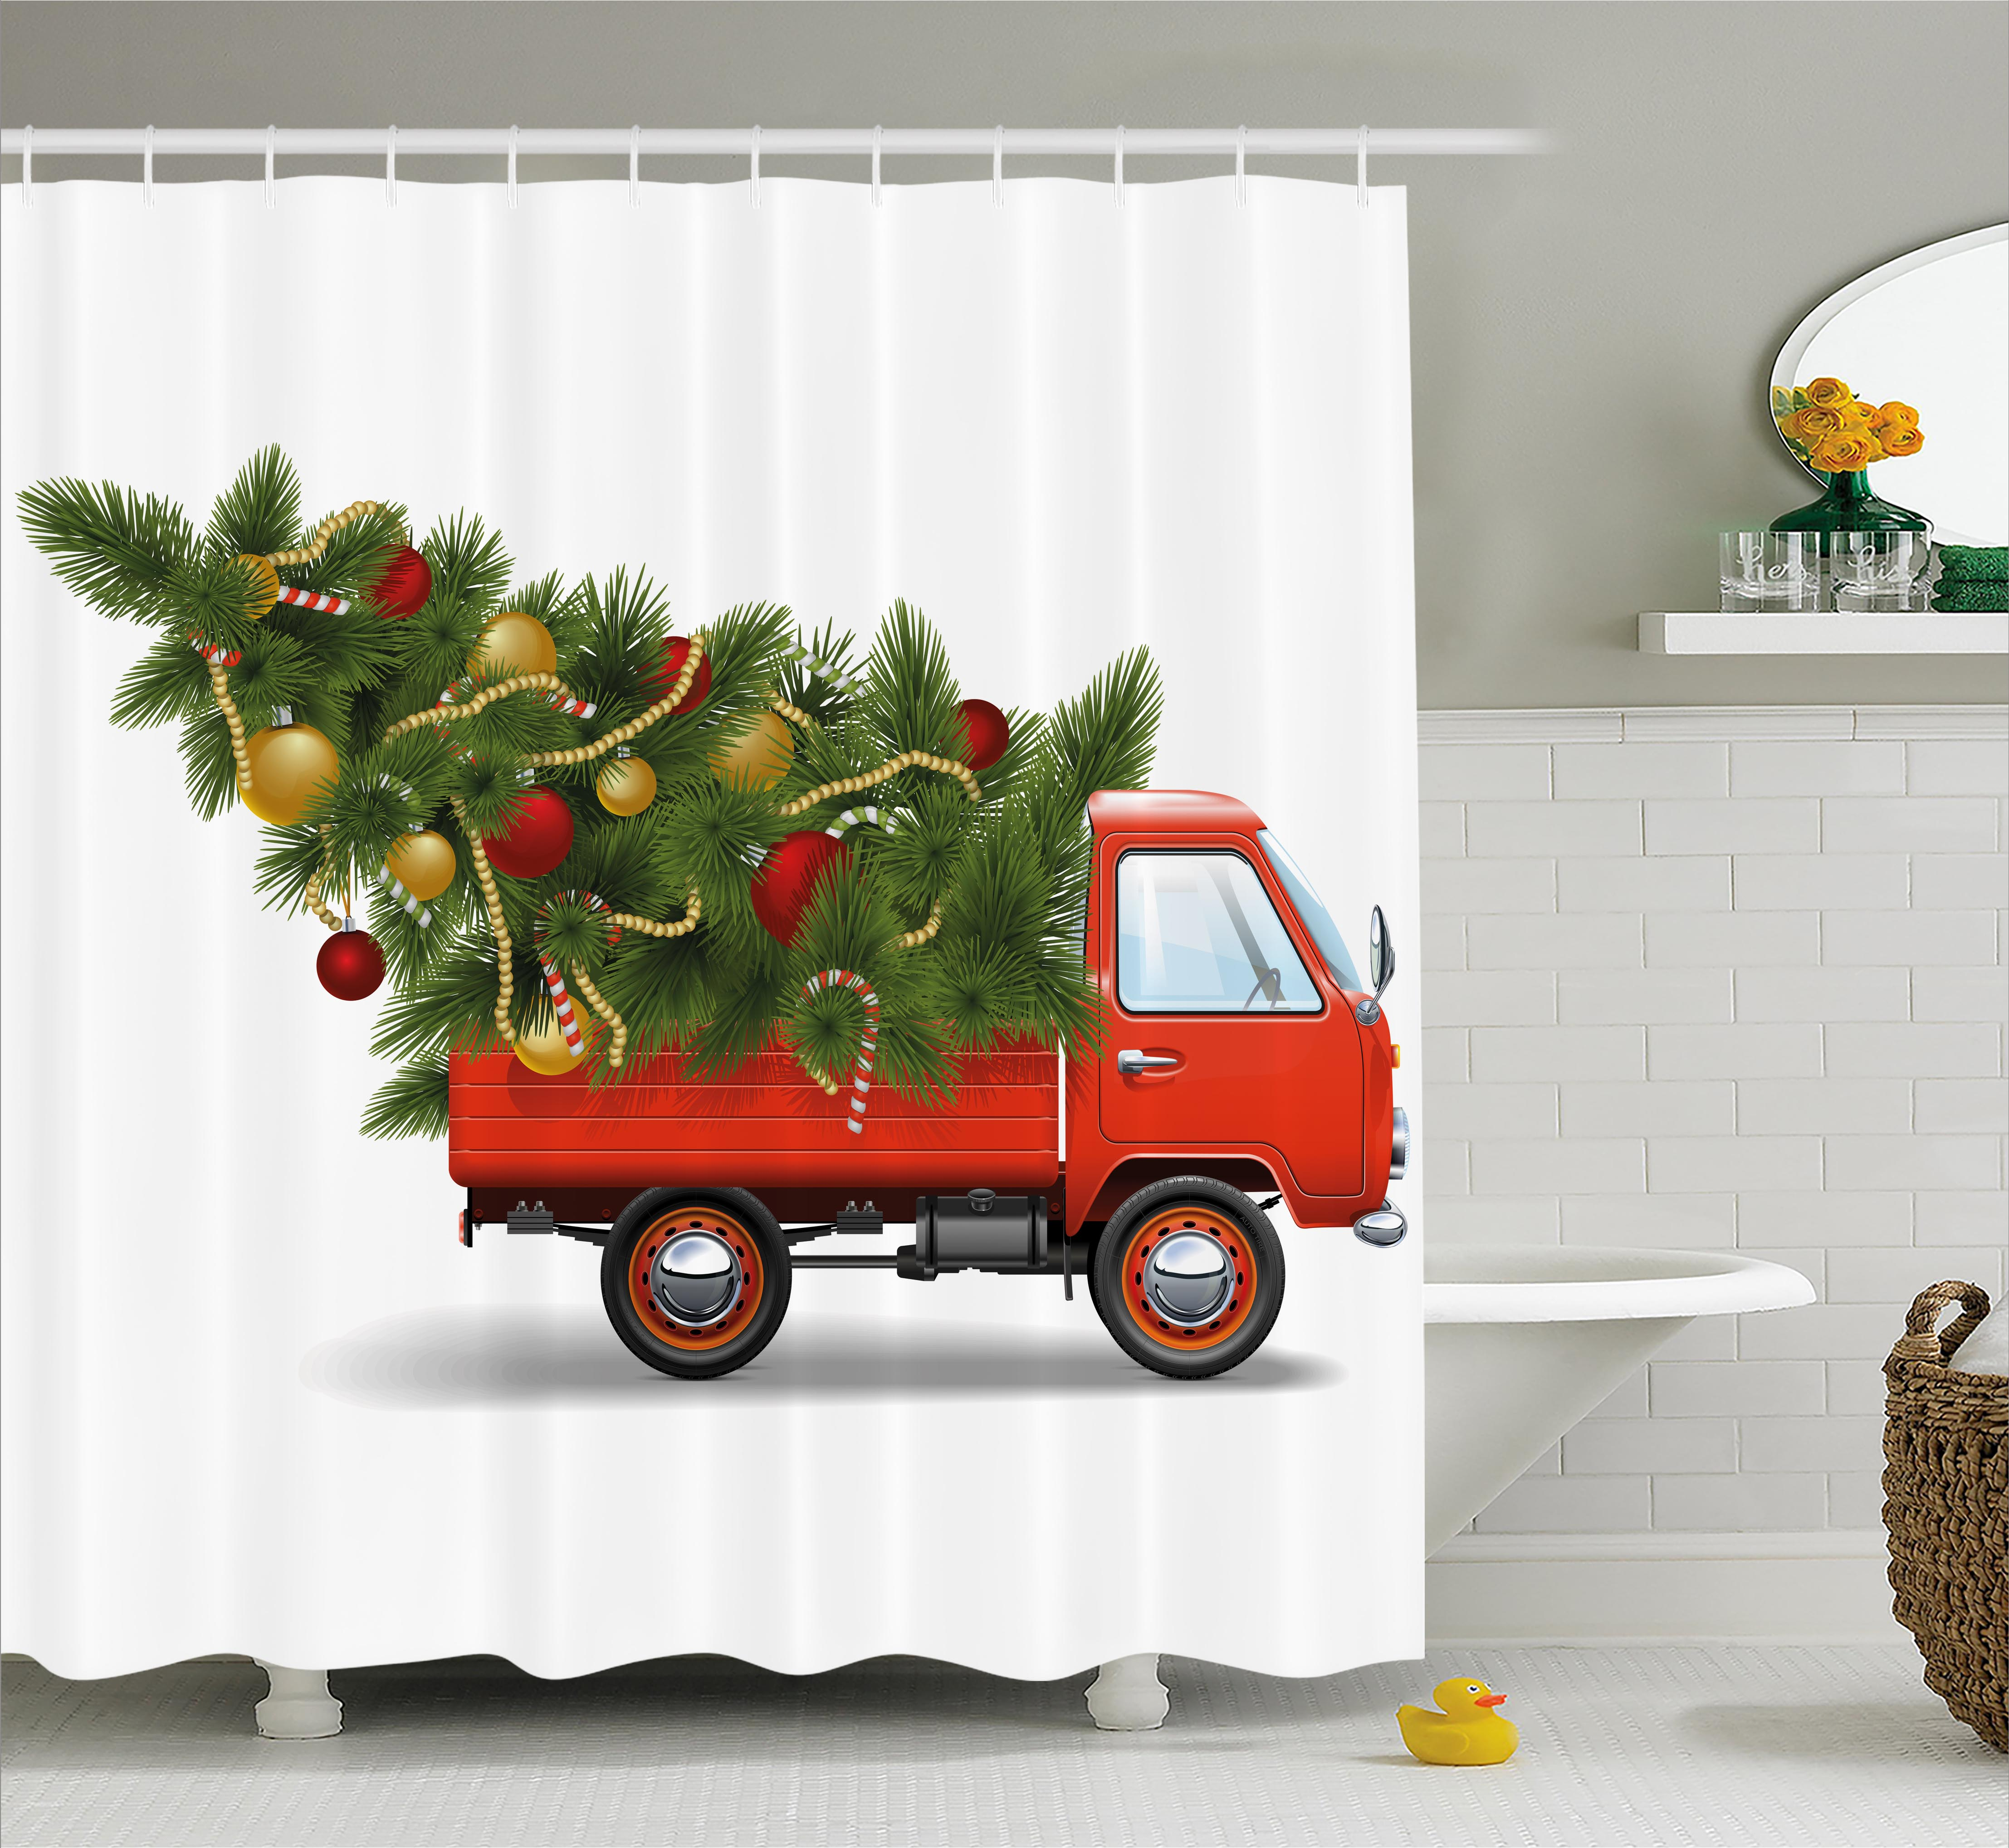 Christmas Shower Curtain Set, Red Retro Farm Truck and Big Christmas Tree with Decorations Tinsel Balls Candy, Bathroom Decor, White Red Green, by Ambesonne